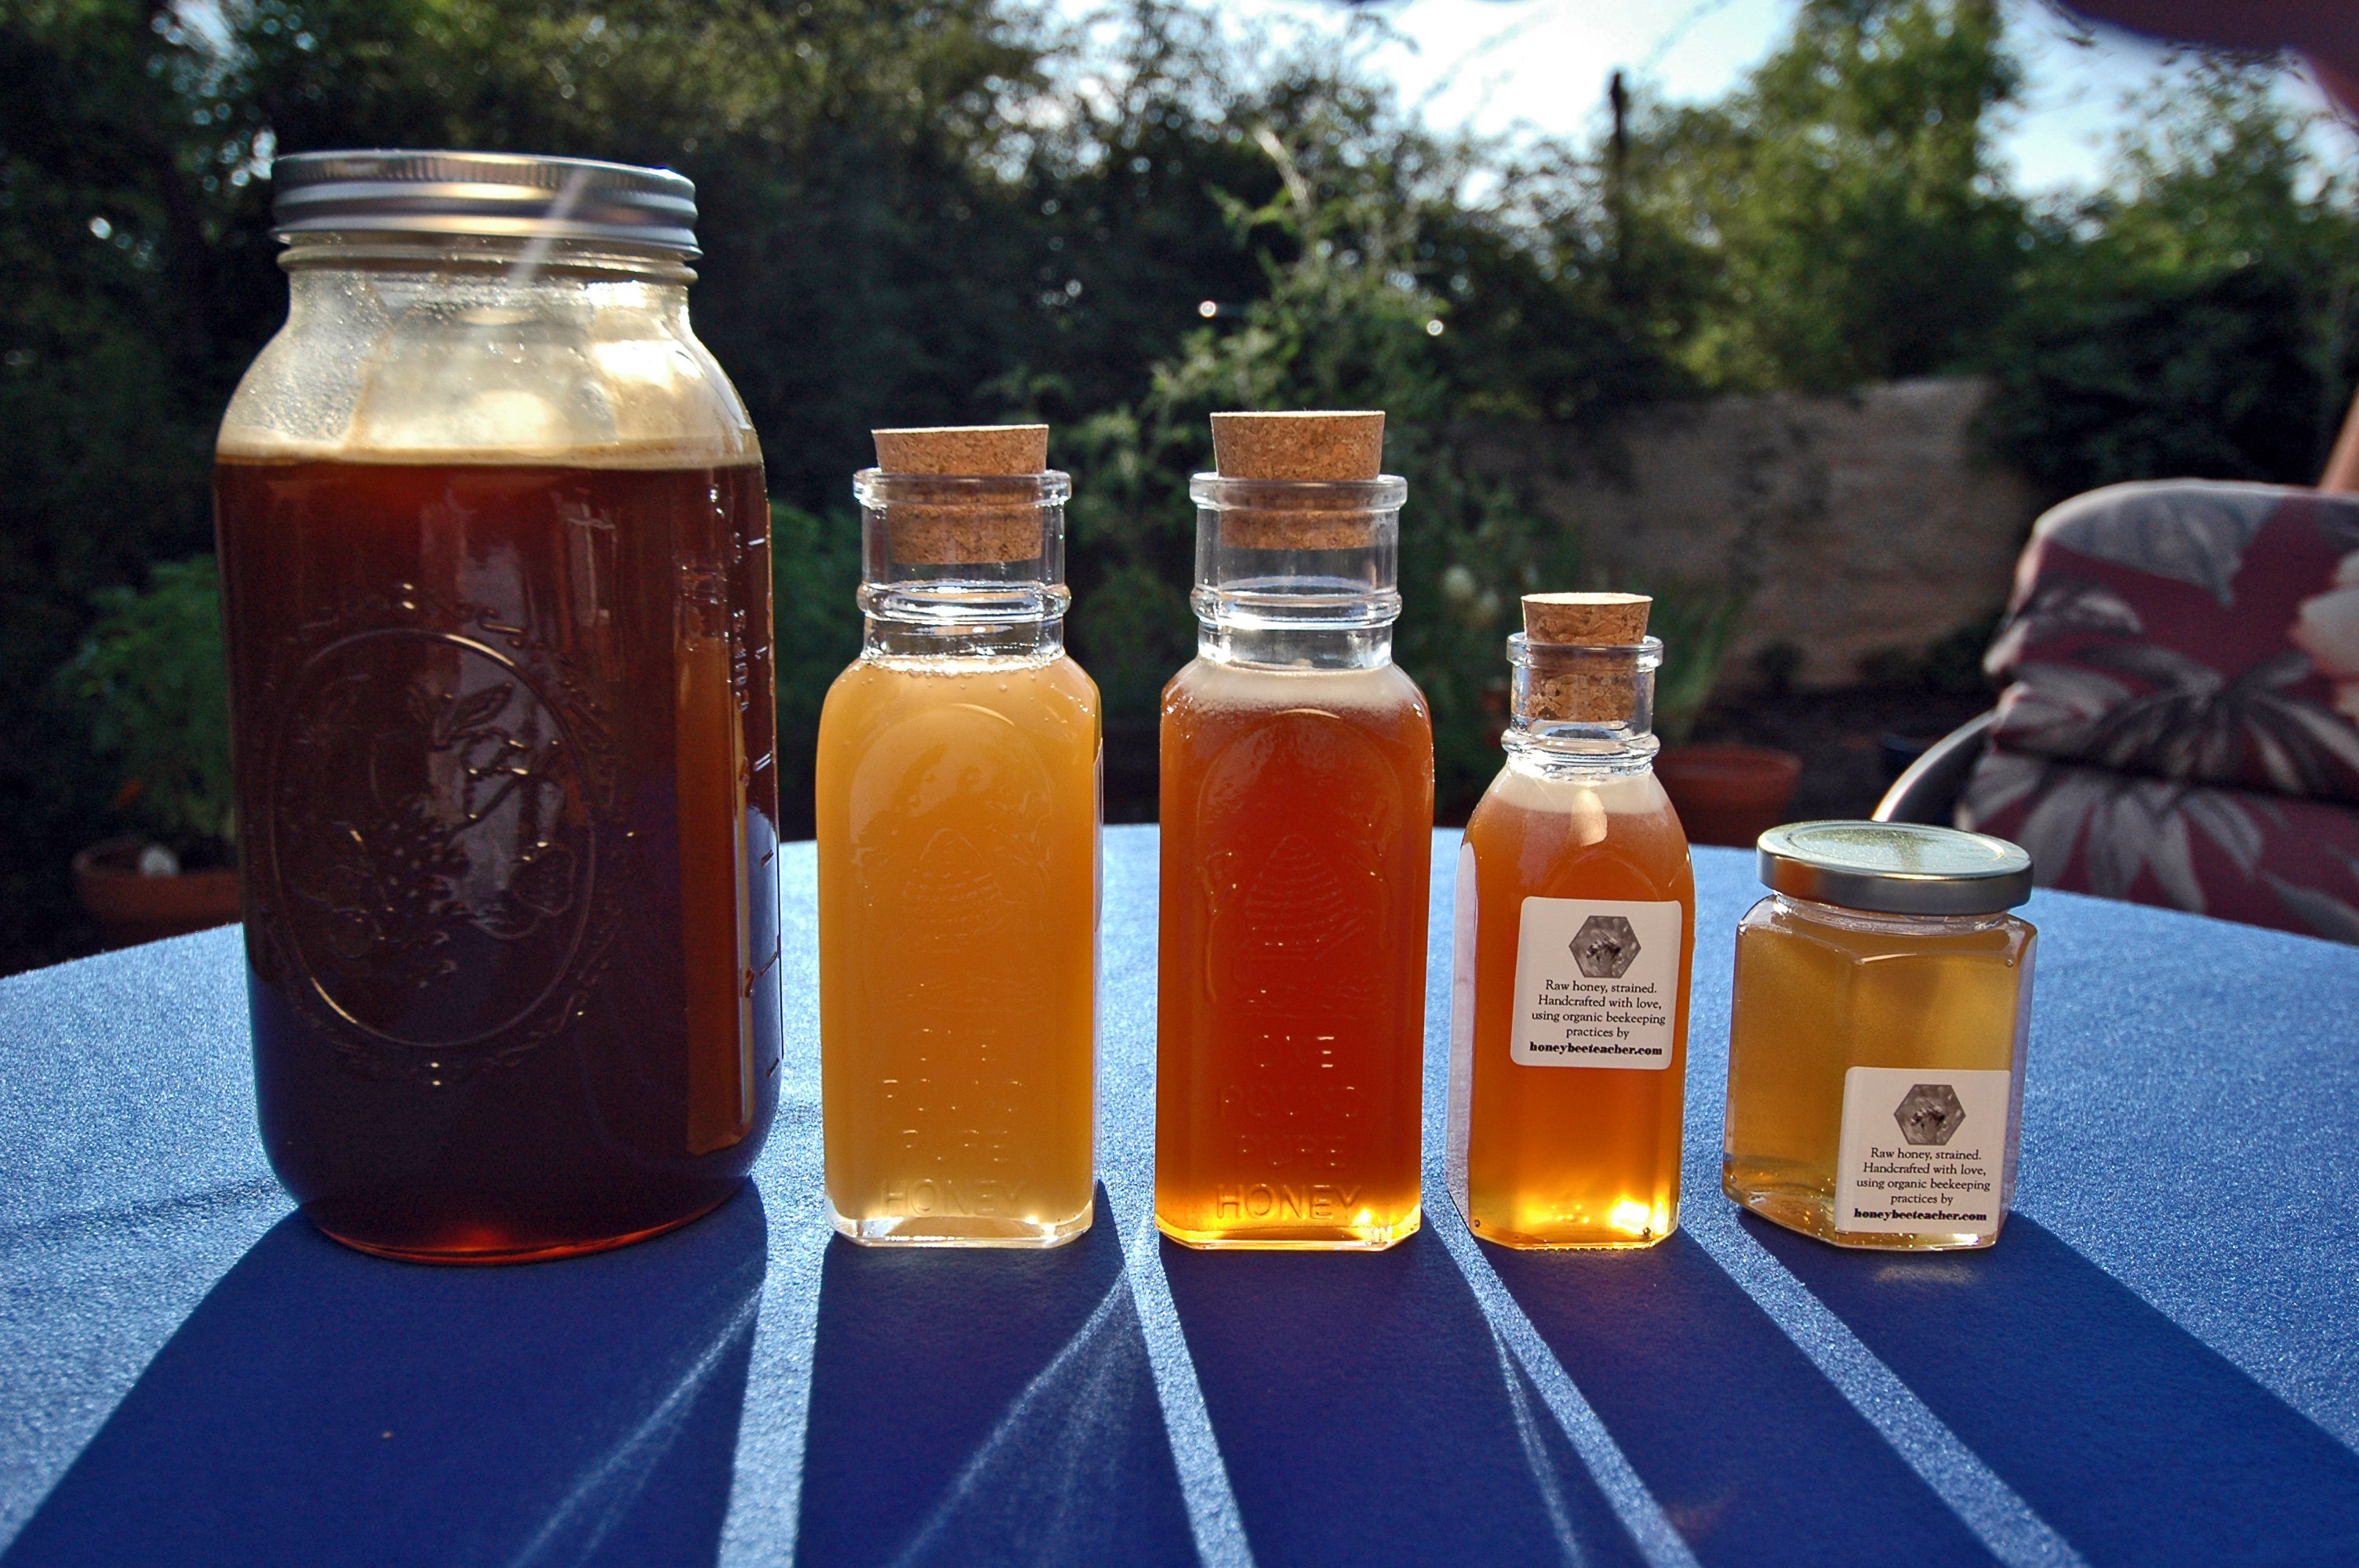 Honey from several different hives, harvested in 2014.